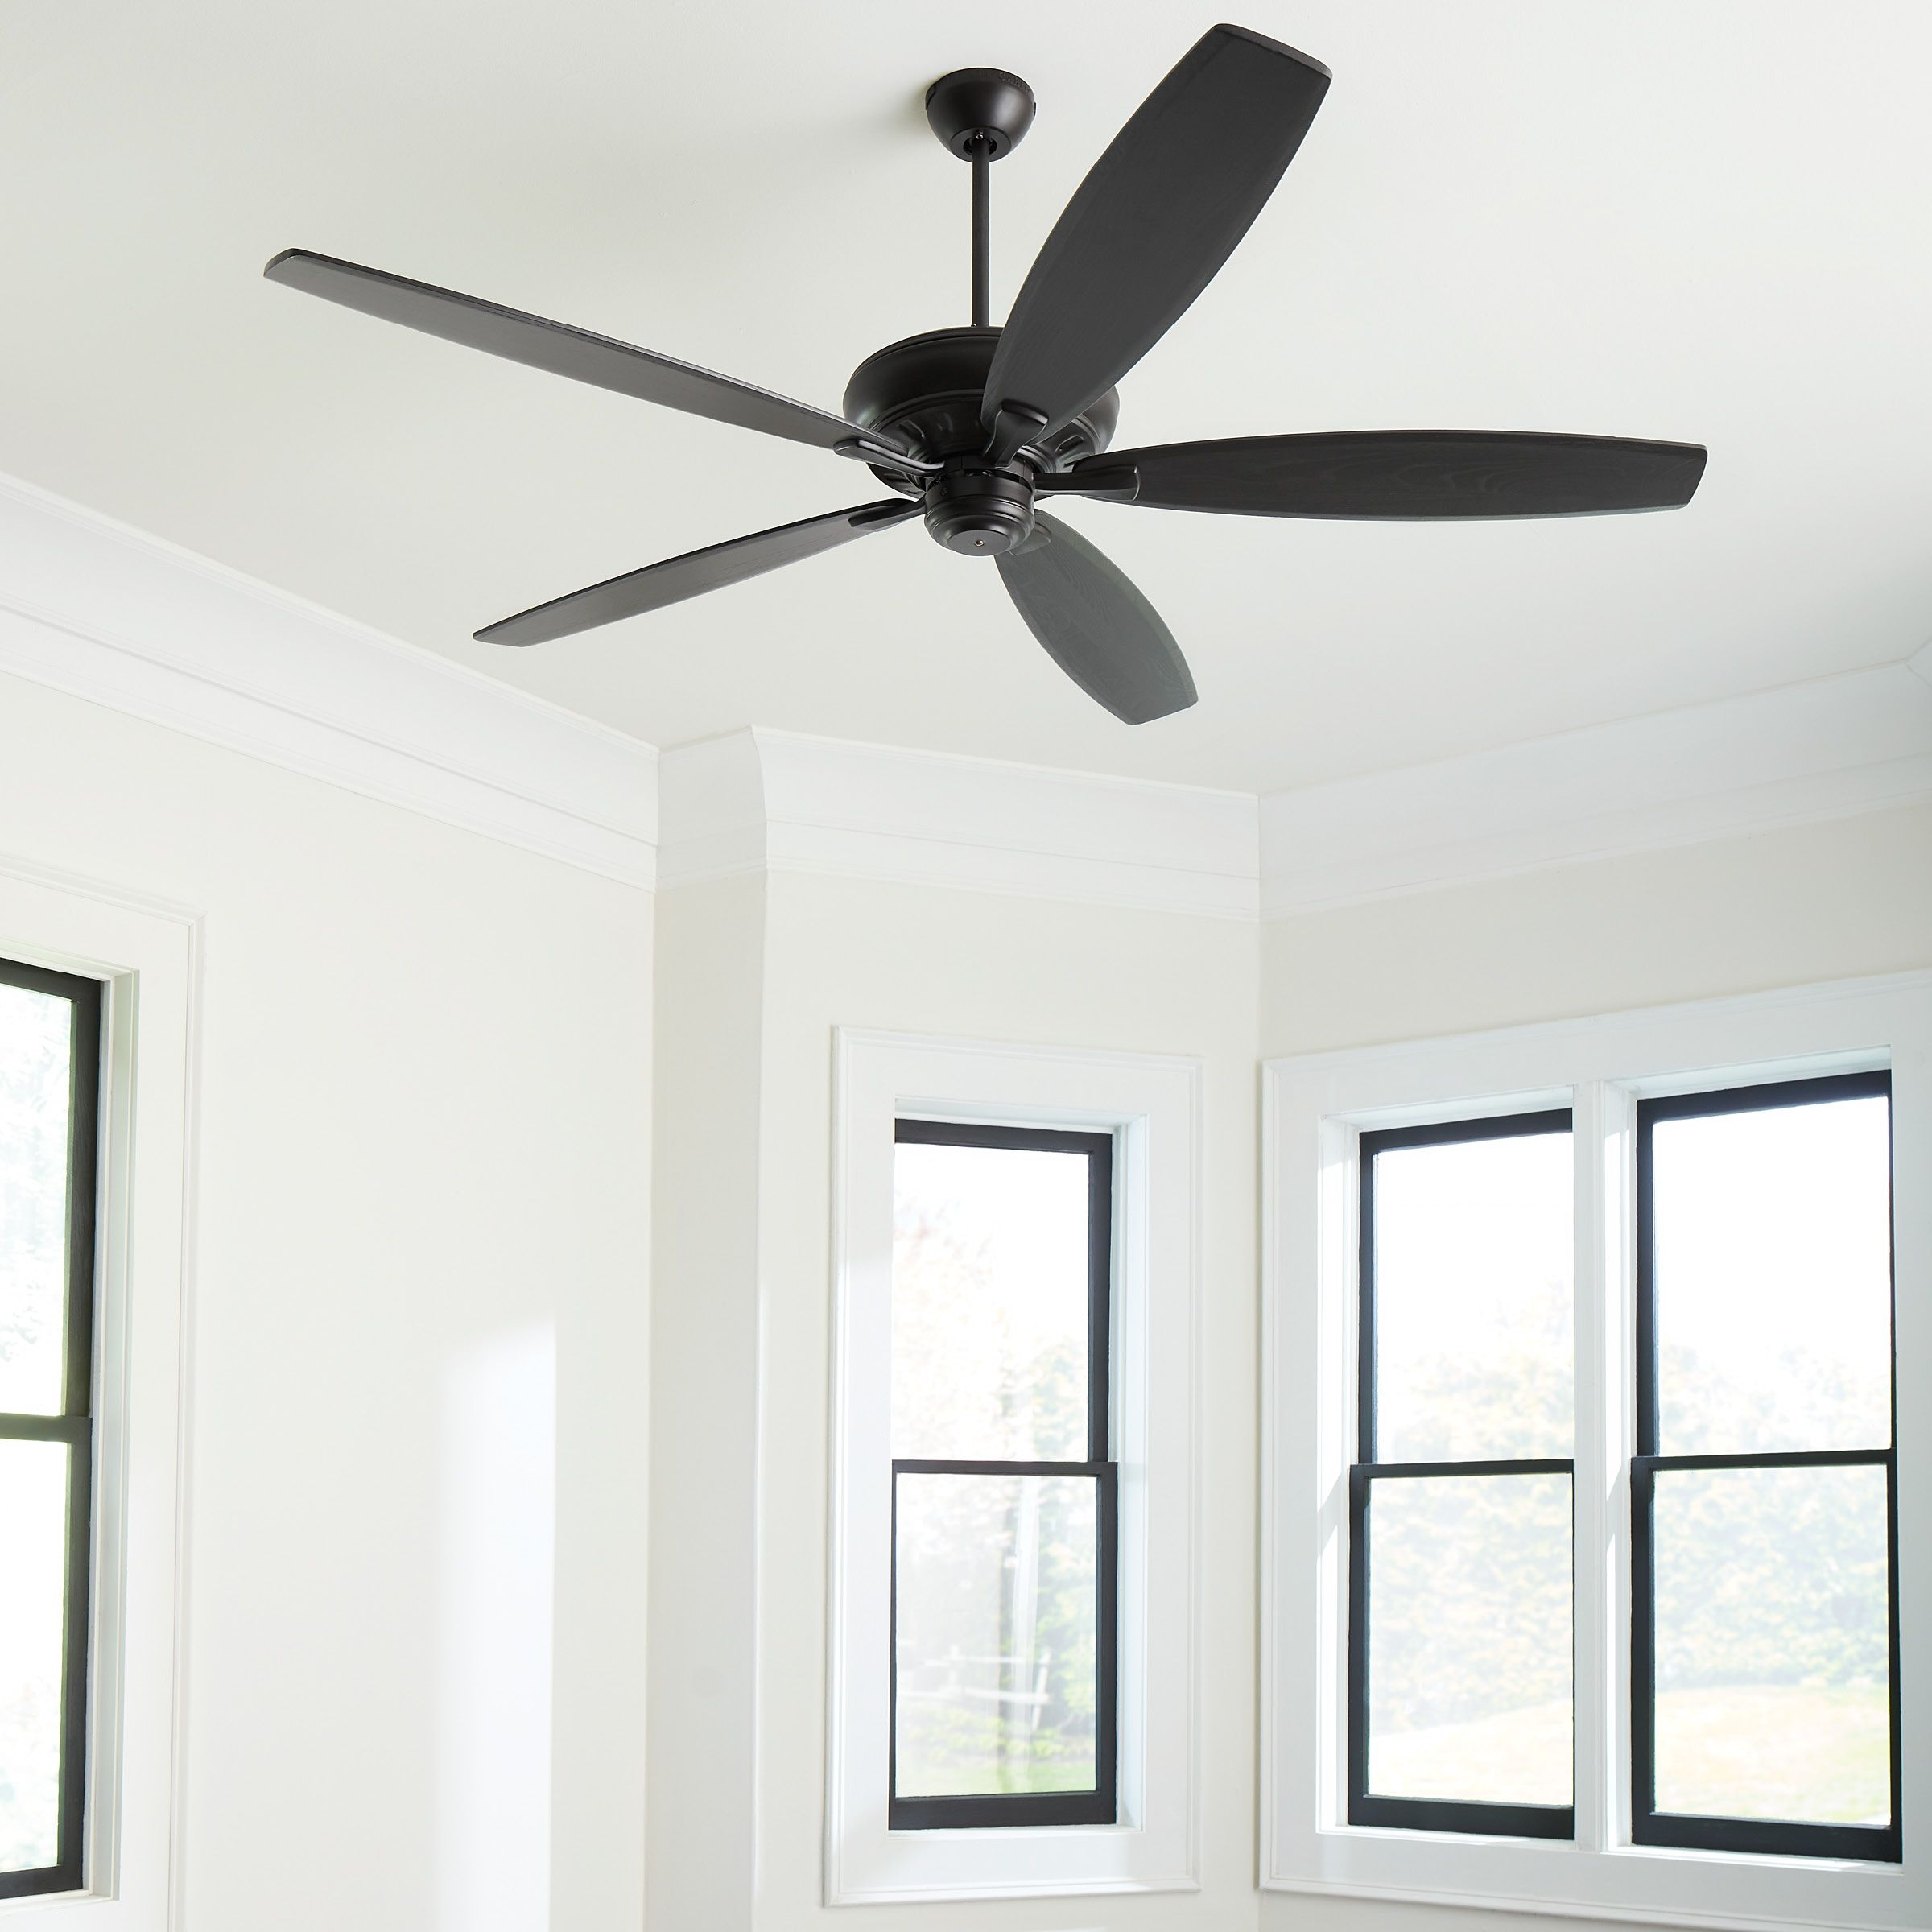 Ceiling Fan Ideas In 2020 Ceiling Fan Living Room Ceiling